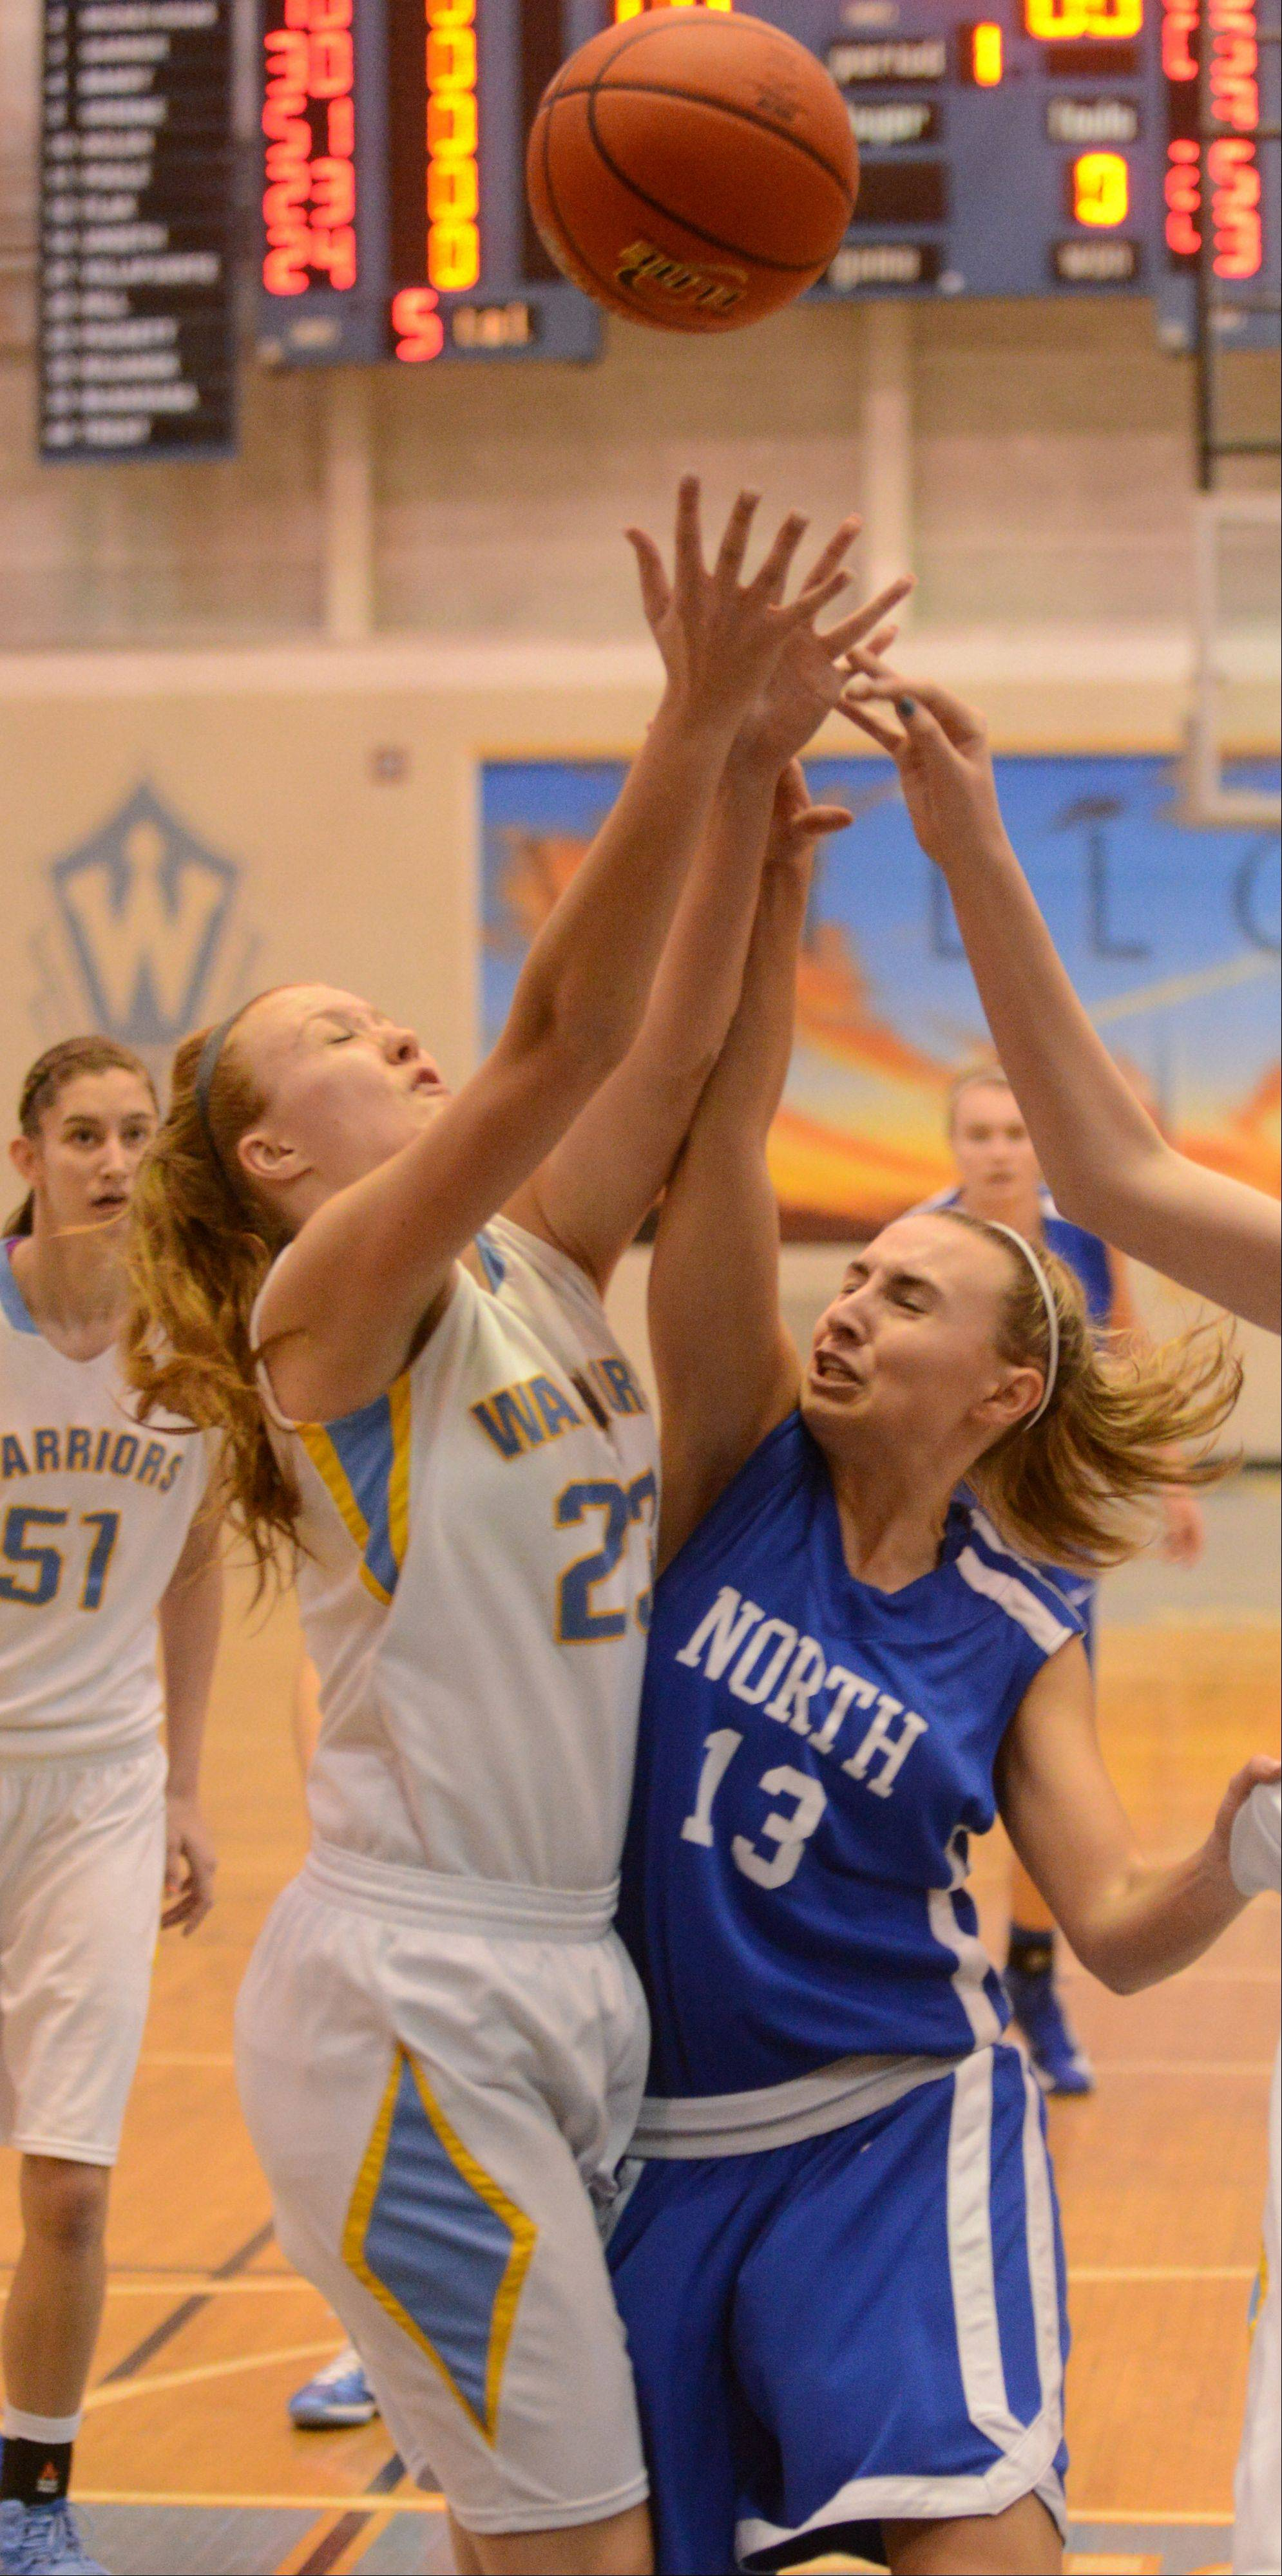 Ashley Collins of Main West,left, and Brooke Schanowski of Wheaton north go for a rebound during the Wheaton North vs. Maine West girls basketball game at McDonald�s Shootout in Willowbrook Saturday.